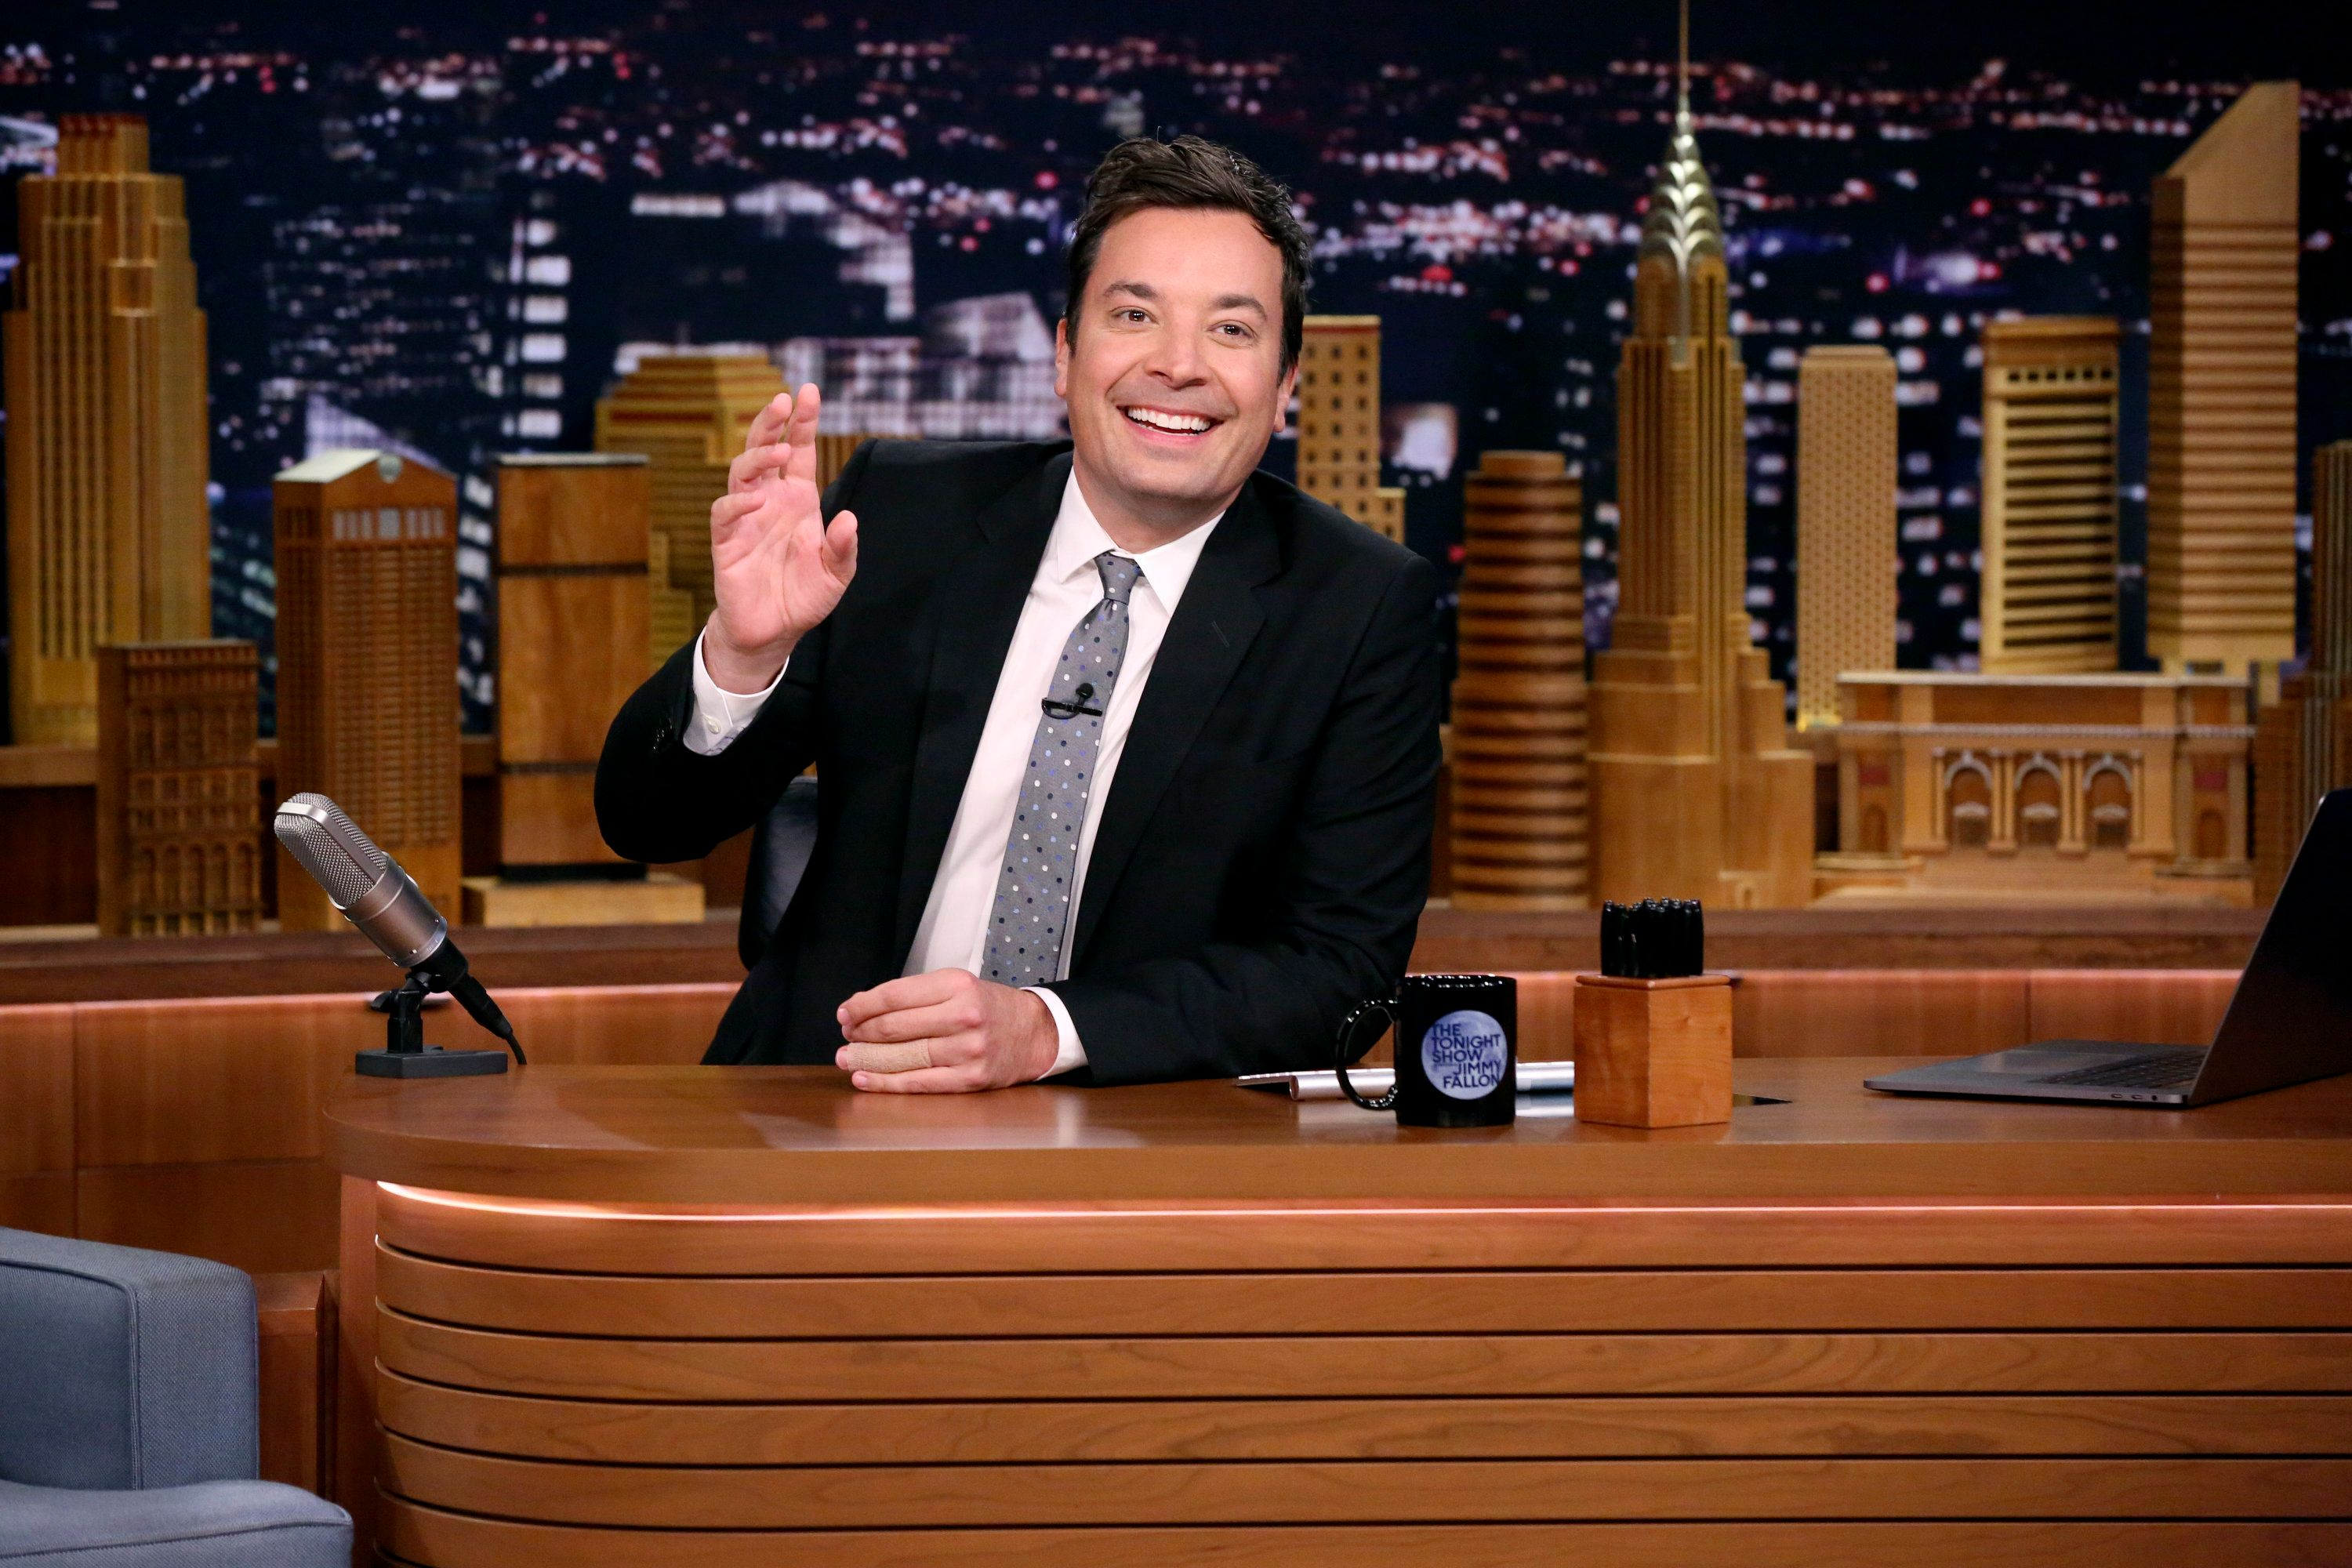 No new 'Tonight Show' on Friday due to private Fallon family matter